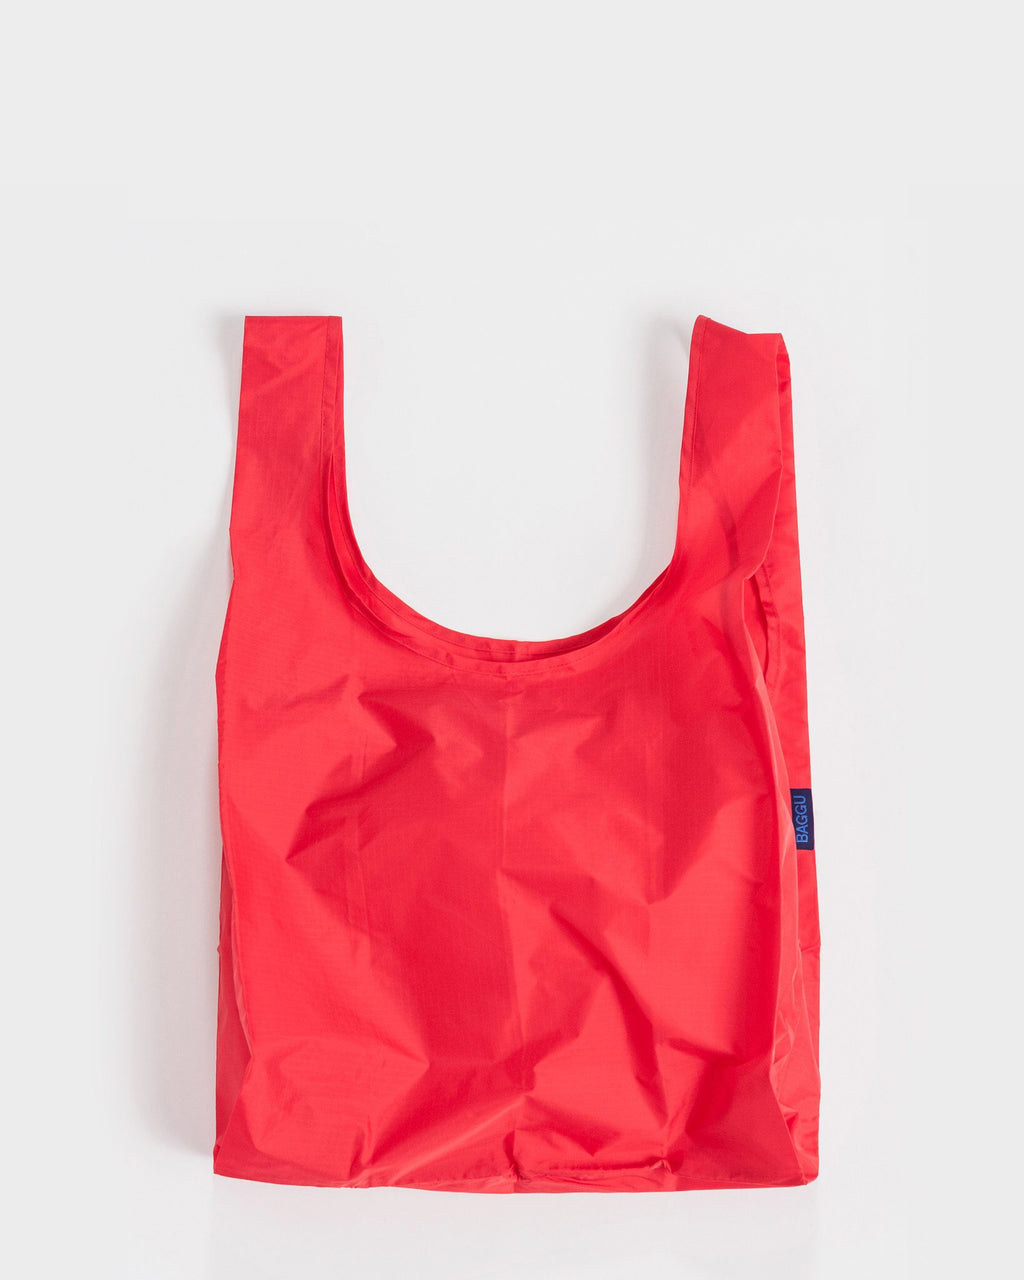 Baggu . Reusable shopping bag . Red